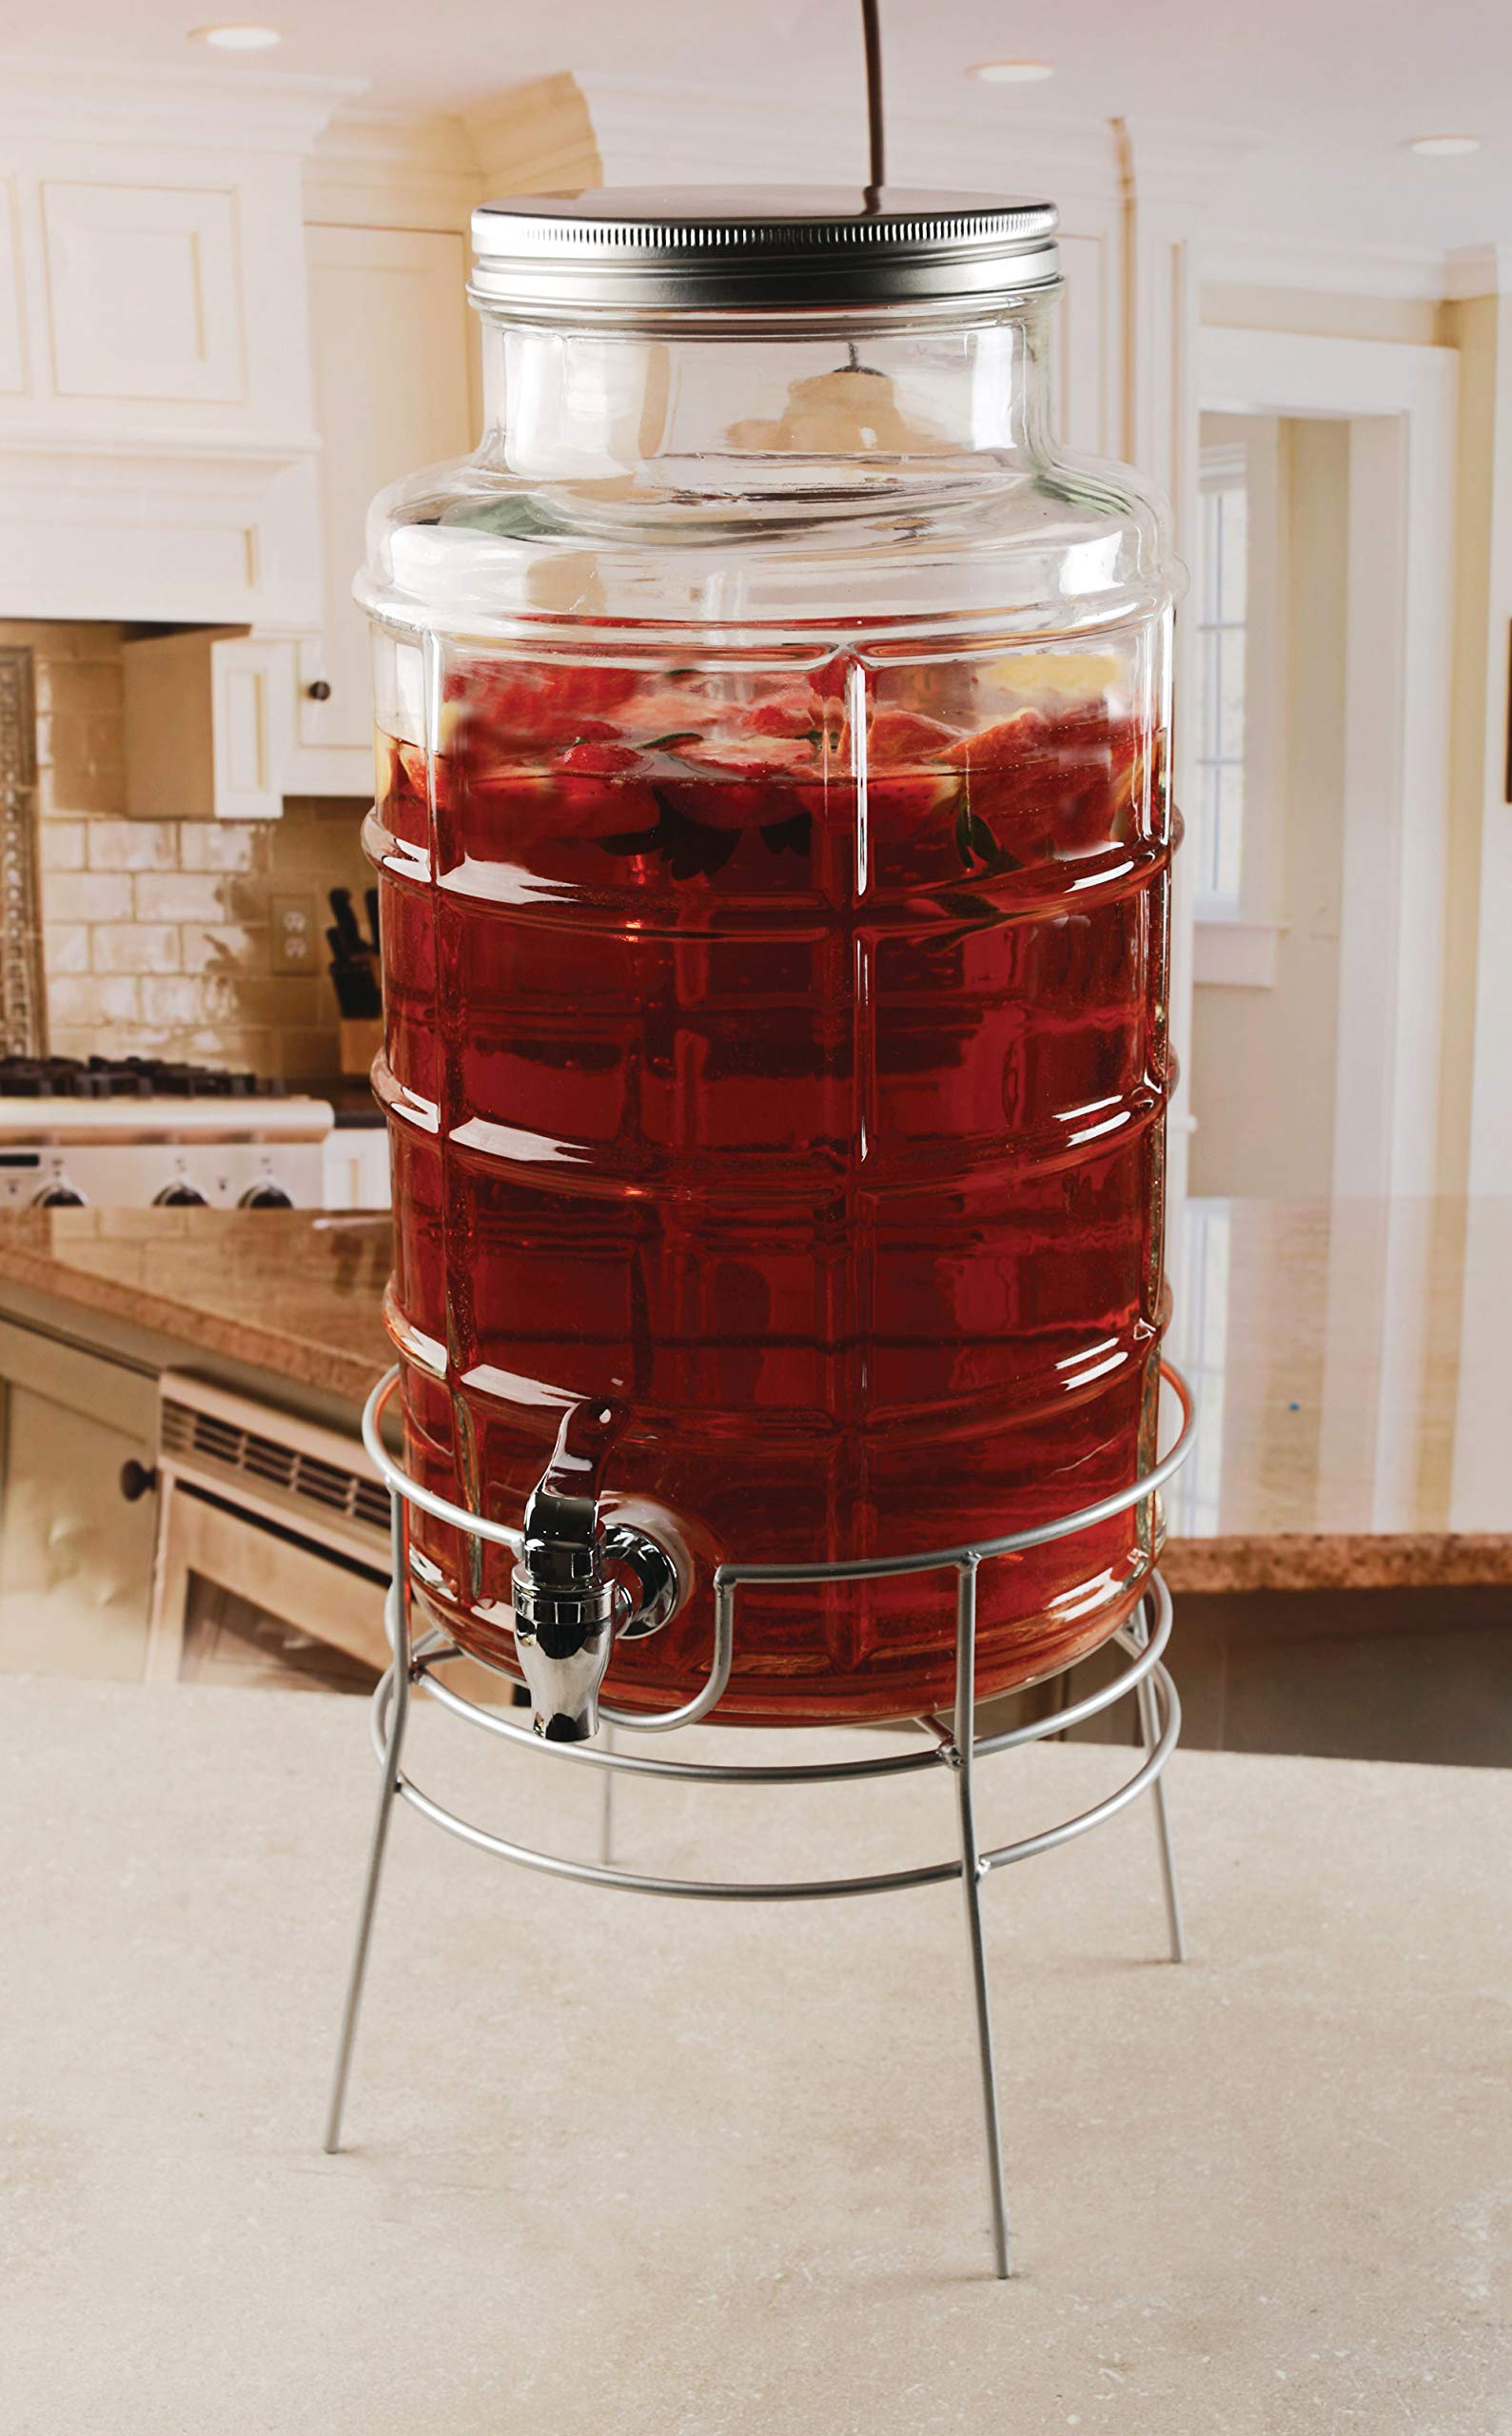 Circleware Newton Creek Glass Beverage Dispenser with Metal Stand and Lid, Entertainment Kitchen Glassware Drink Pitcher for Water, Juice, Wine, Kombucha & Cold Drinks, Huge 2.2 Gallon, Clear by Circleware (Image #2)